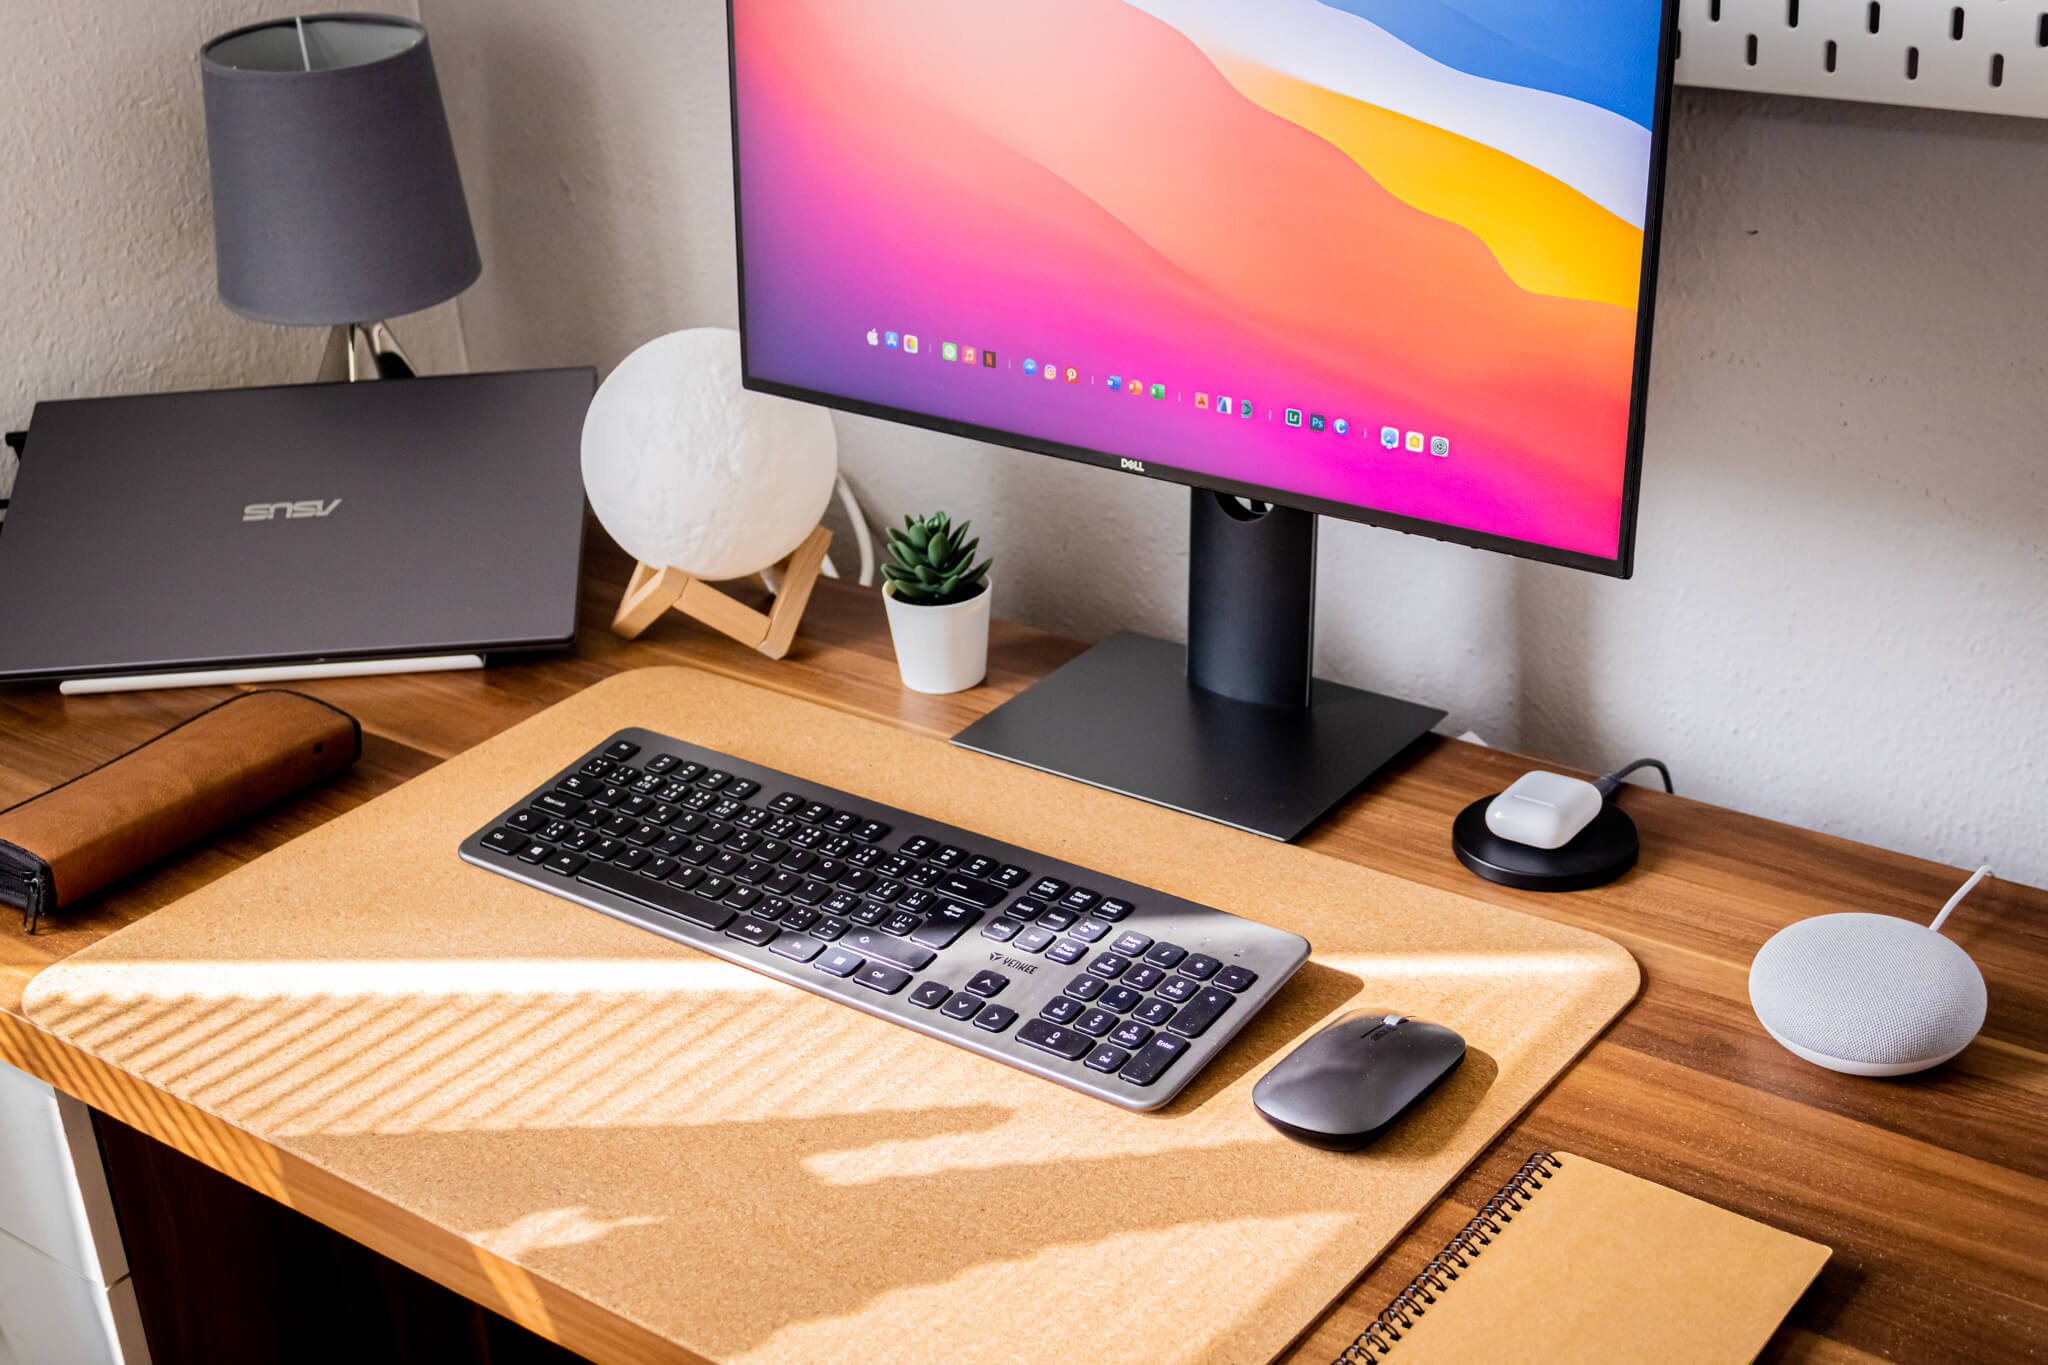 Matúš is using a Dell UltraSharp 2419HC display connected to an ASUS laptop